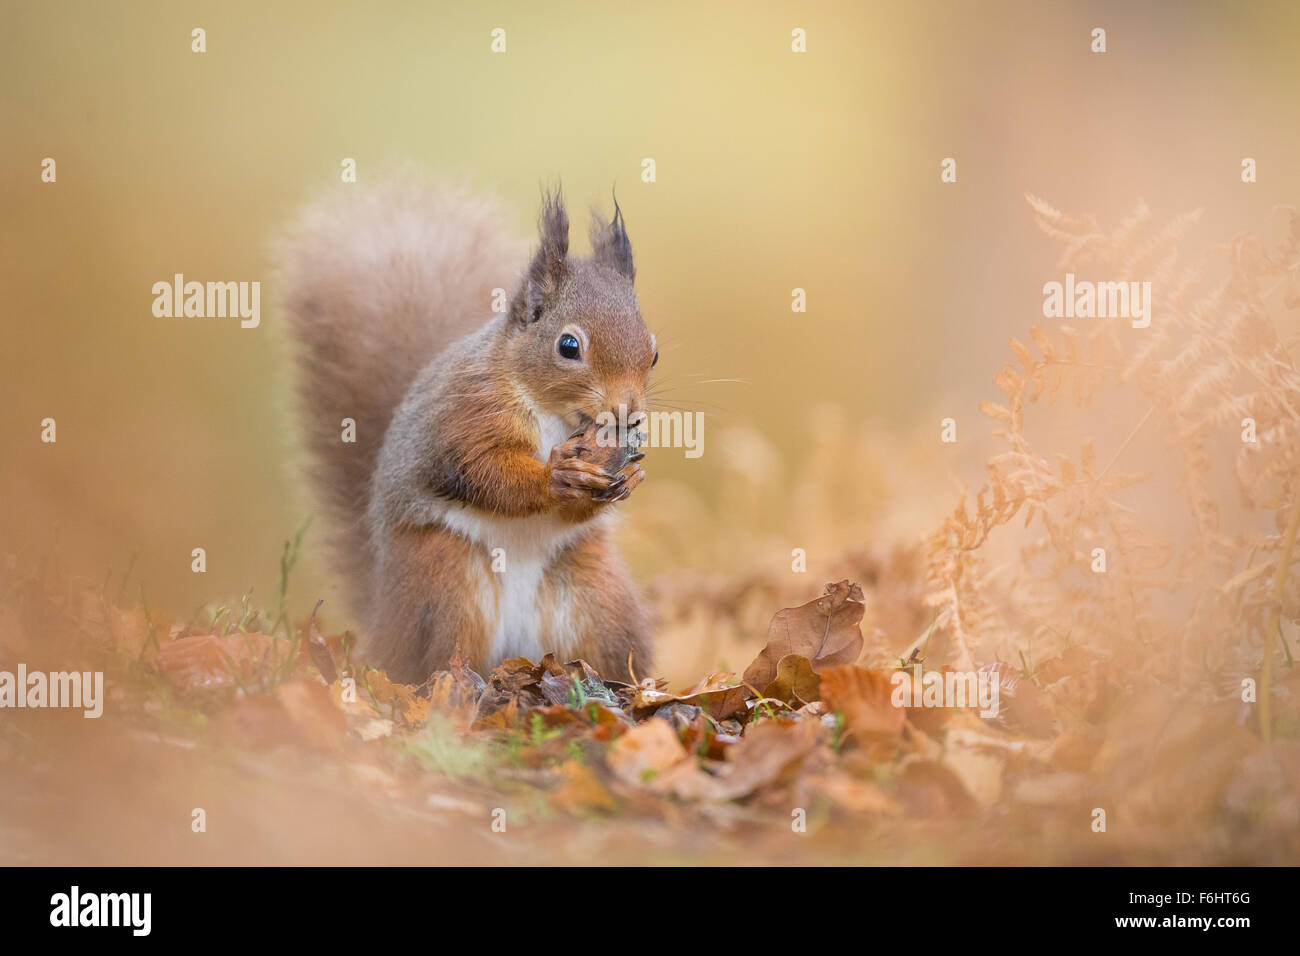 Red Squirrel (Sciurus Vulgaris) pictured eating a nut in a forest in the Cairngorms National Park, Scotland. - Stock Image